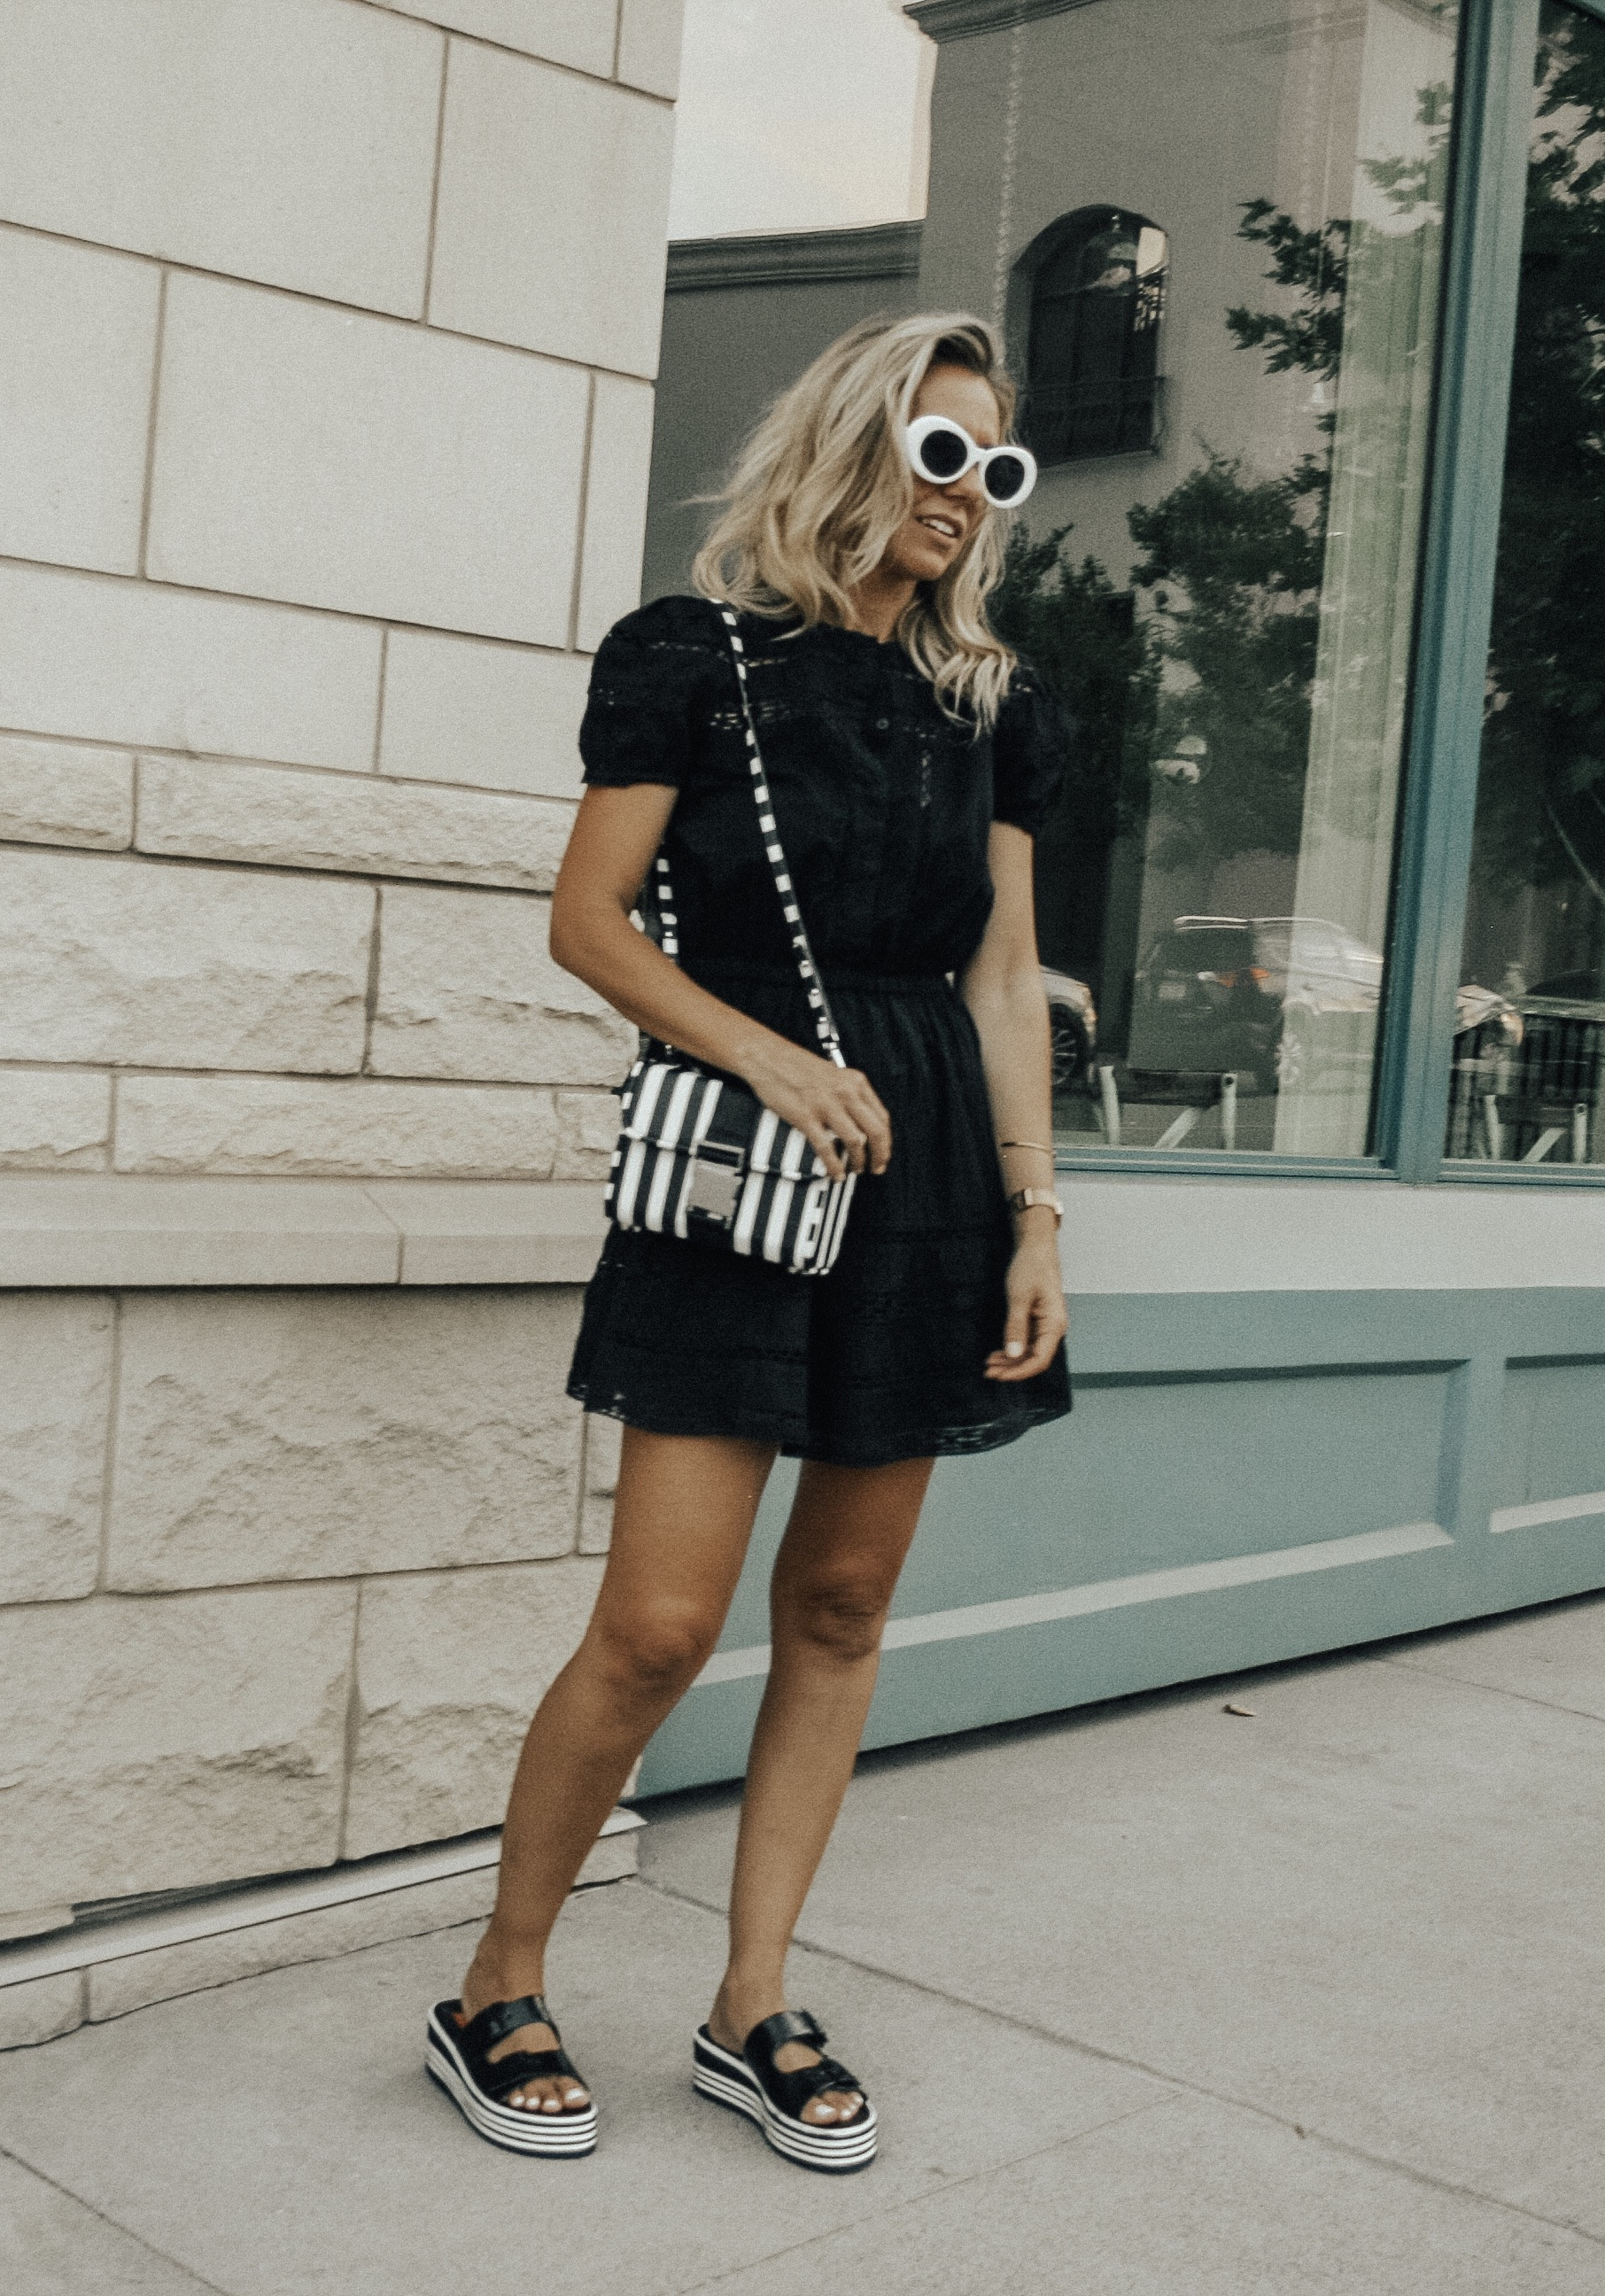 BLACK, WHITE + A LITTLE BIT RETRO- Jaclyn De Leon Style + black lace dress + black and white striped crossbody handbag + platform sandals + retro style sunglasses + urban outfitters + Zara handbag + boho chic street style + summer outfit + style inspiration